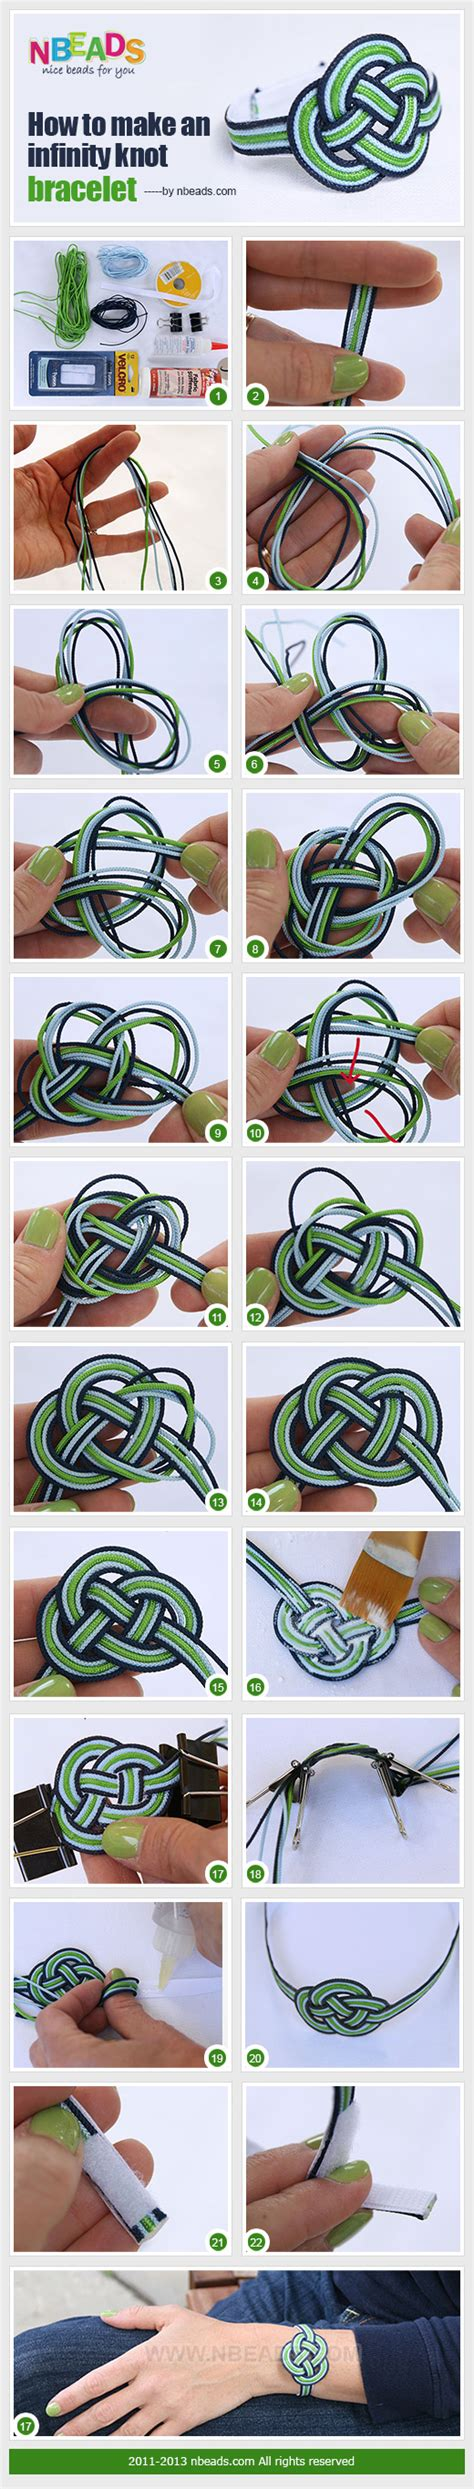 how to do an infinity knot how to make an infinity knot bracelet pictures photos